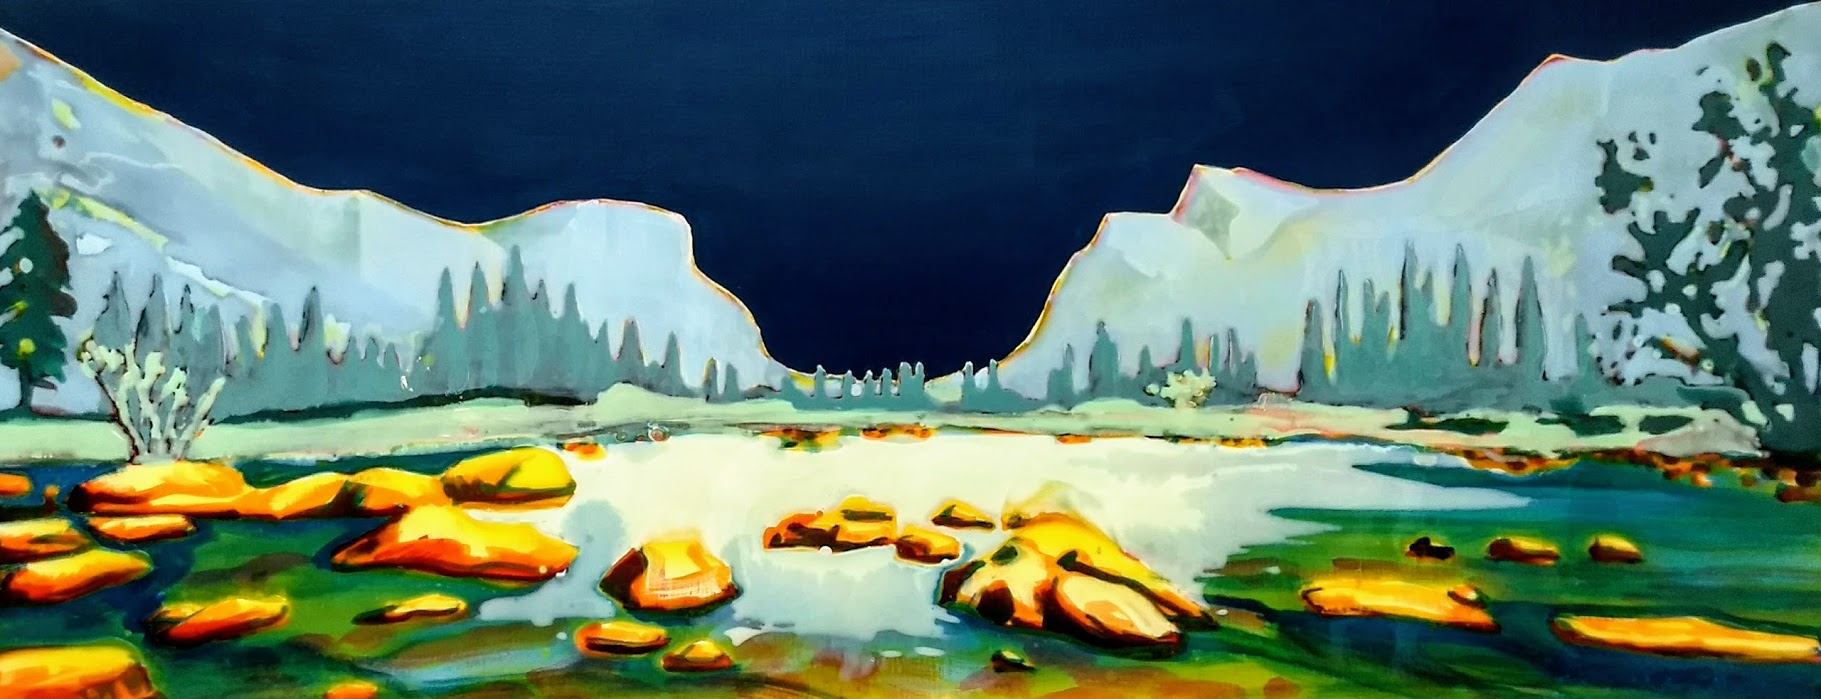 YOSEMITE  acrylic and epoxy on canvas 60x150 cm  Sold